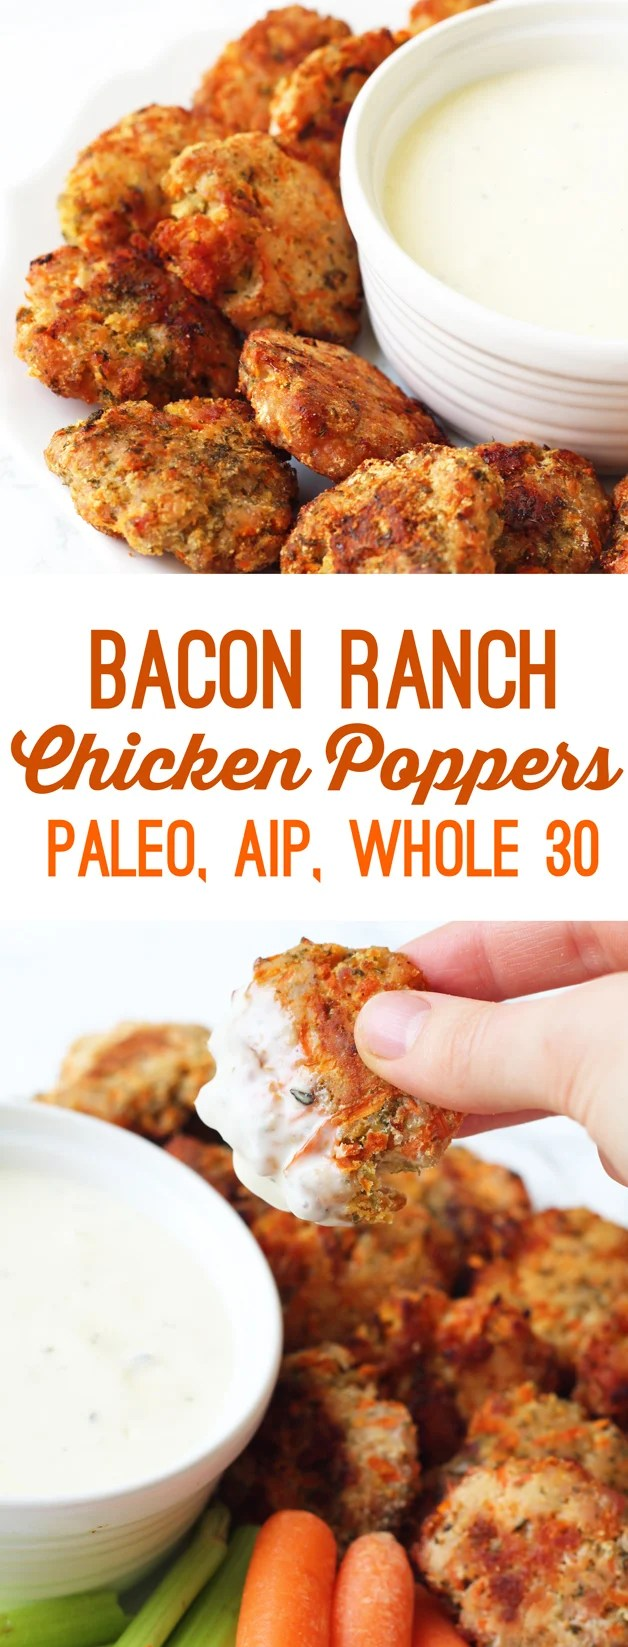 Bacon Ranch Chicken Poppers (Paleo, AIP, Whole 30)